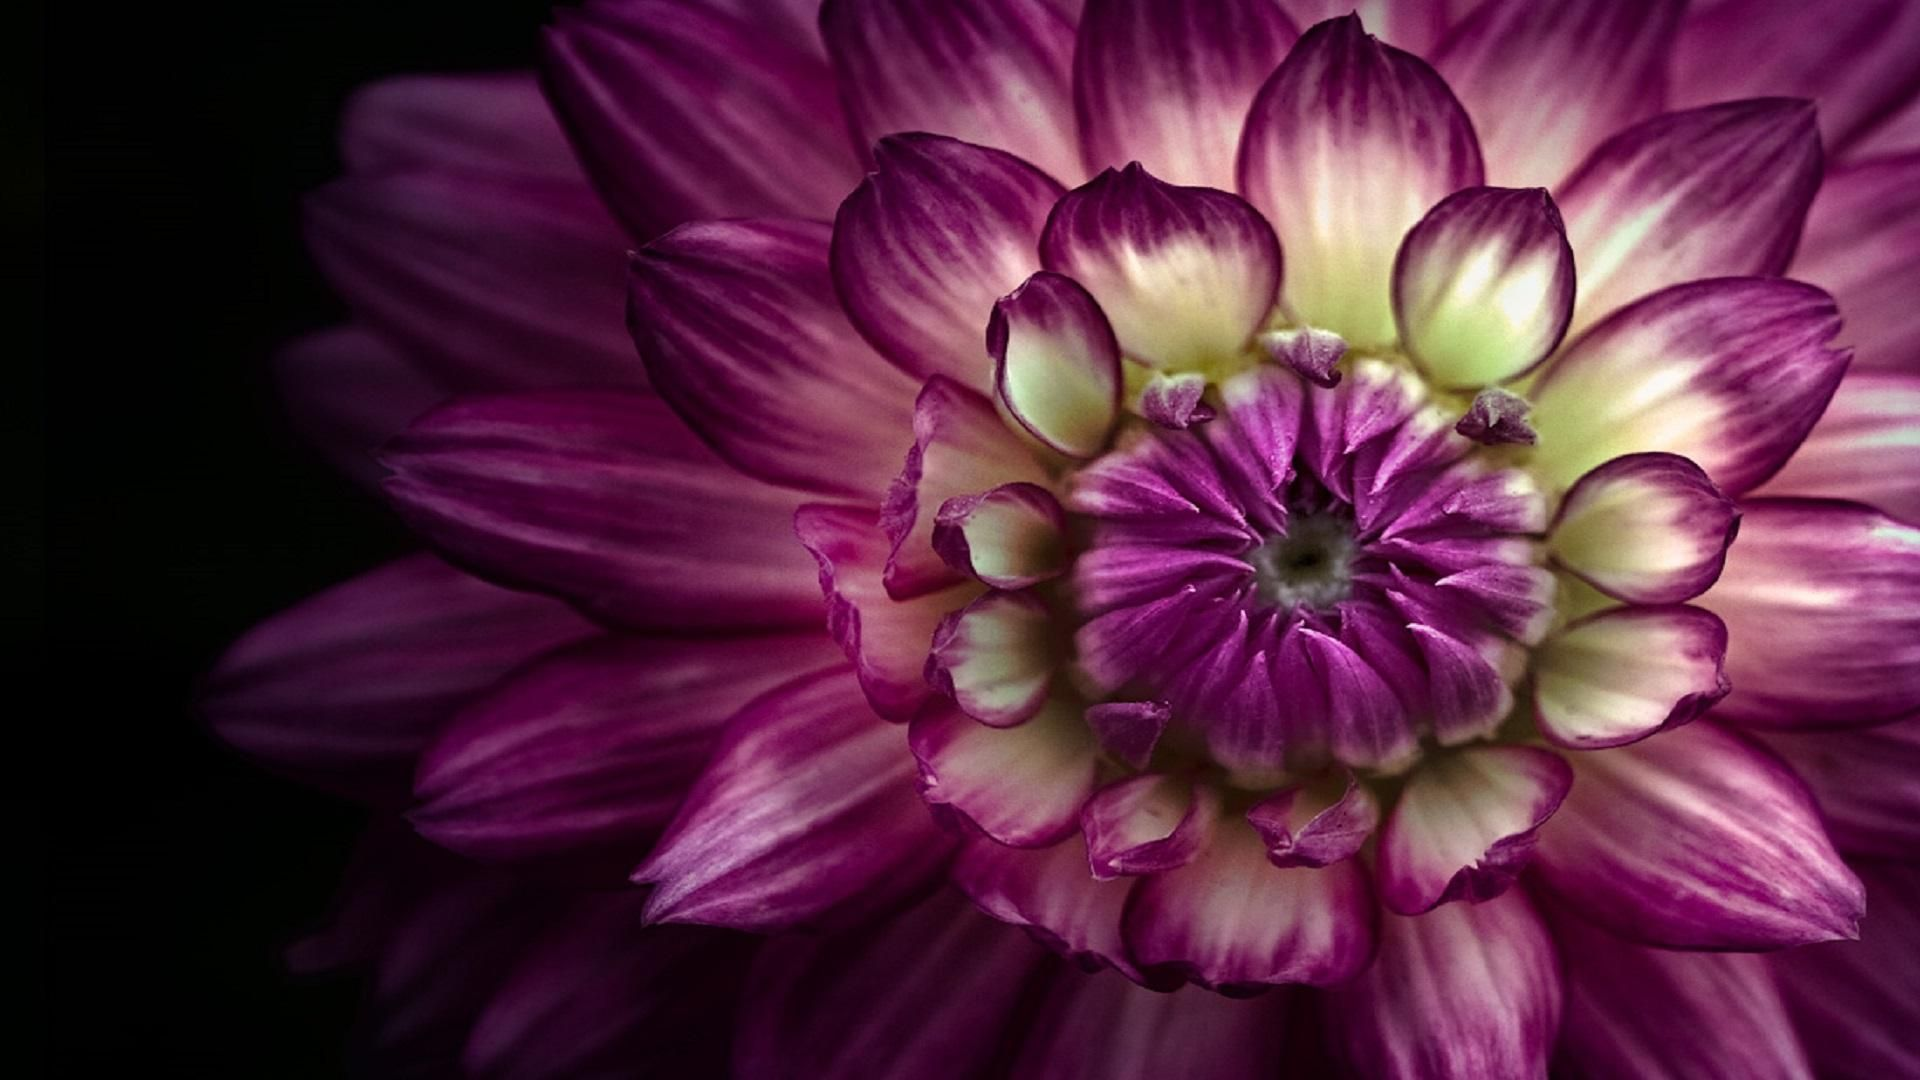 Hd Large Purple Dahlia Wallpaper Macro Photography Flowers Beautiful Flowers Photography Macro Flower